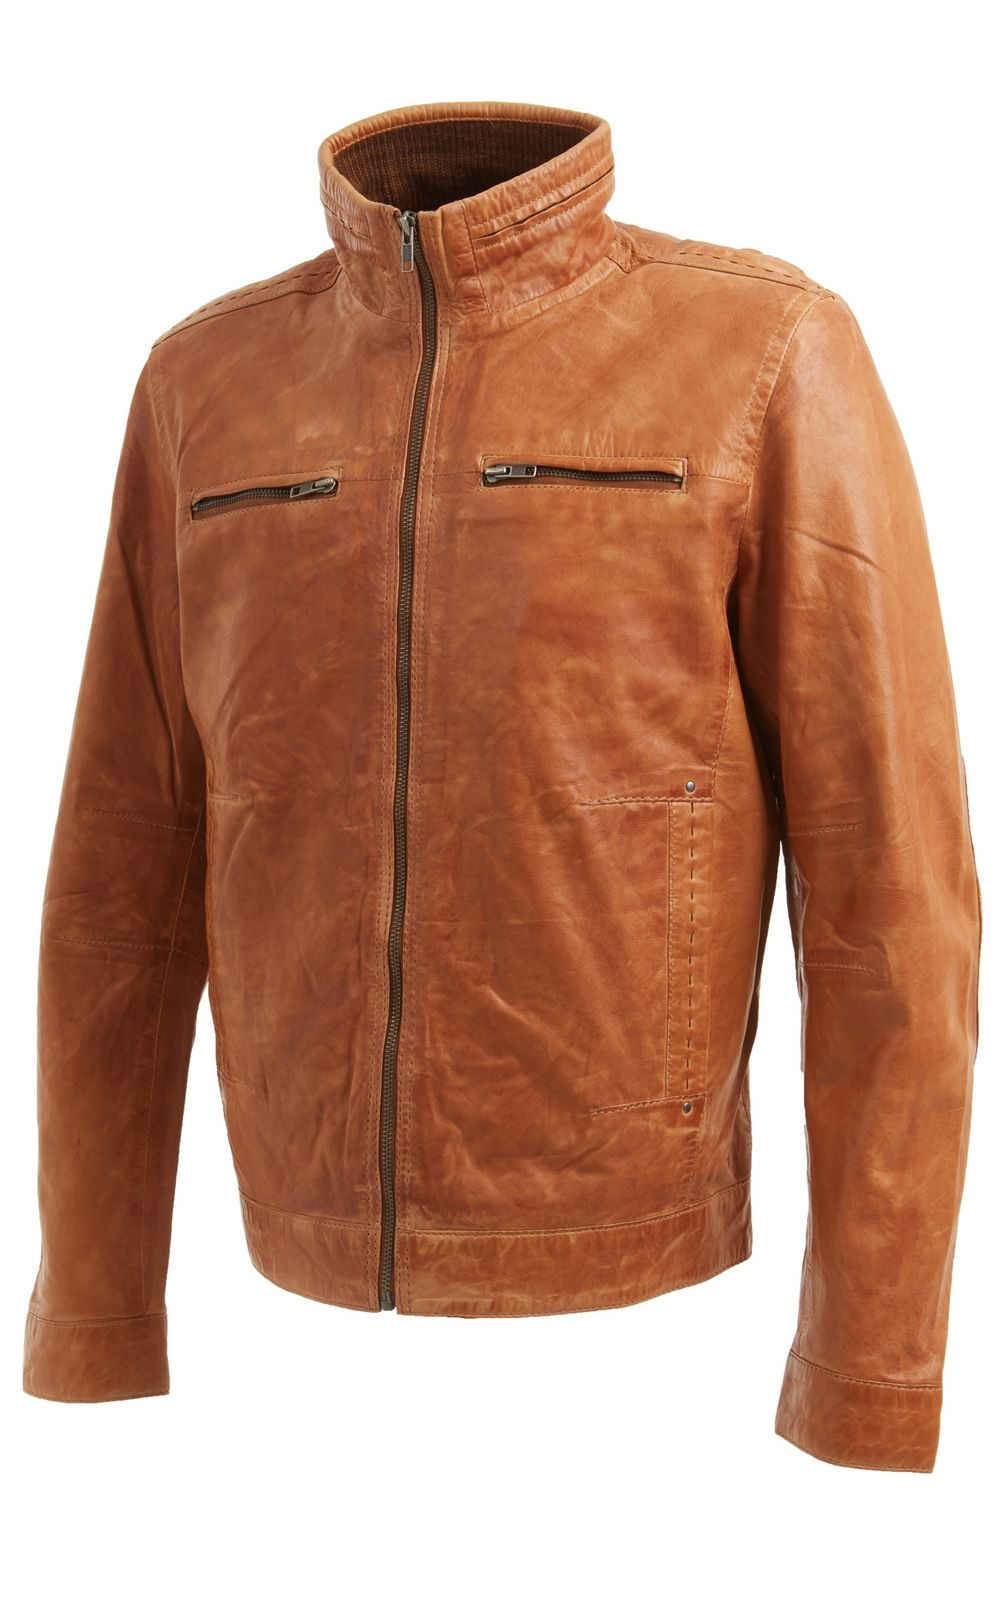 Mens Tan Brown Leather Biker Jacket With Stitch Detail Faith Leather Affordable Leather Jacket Leather Jacket Men Leather Biker Jacket [ 1600 x 1000 Pixel ]